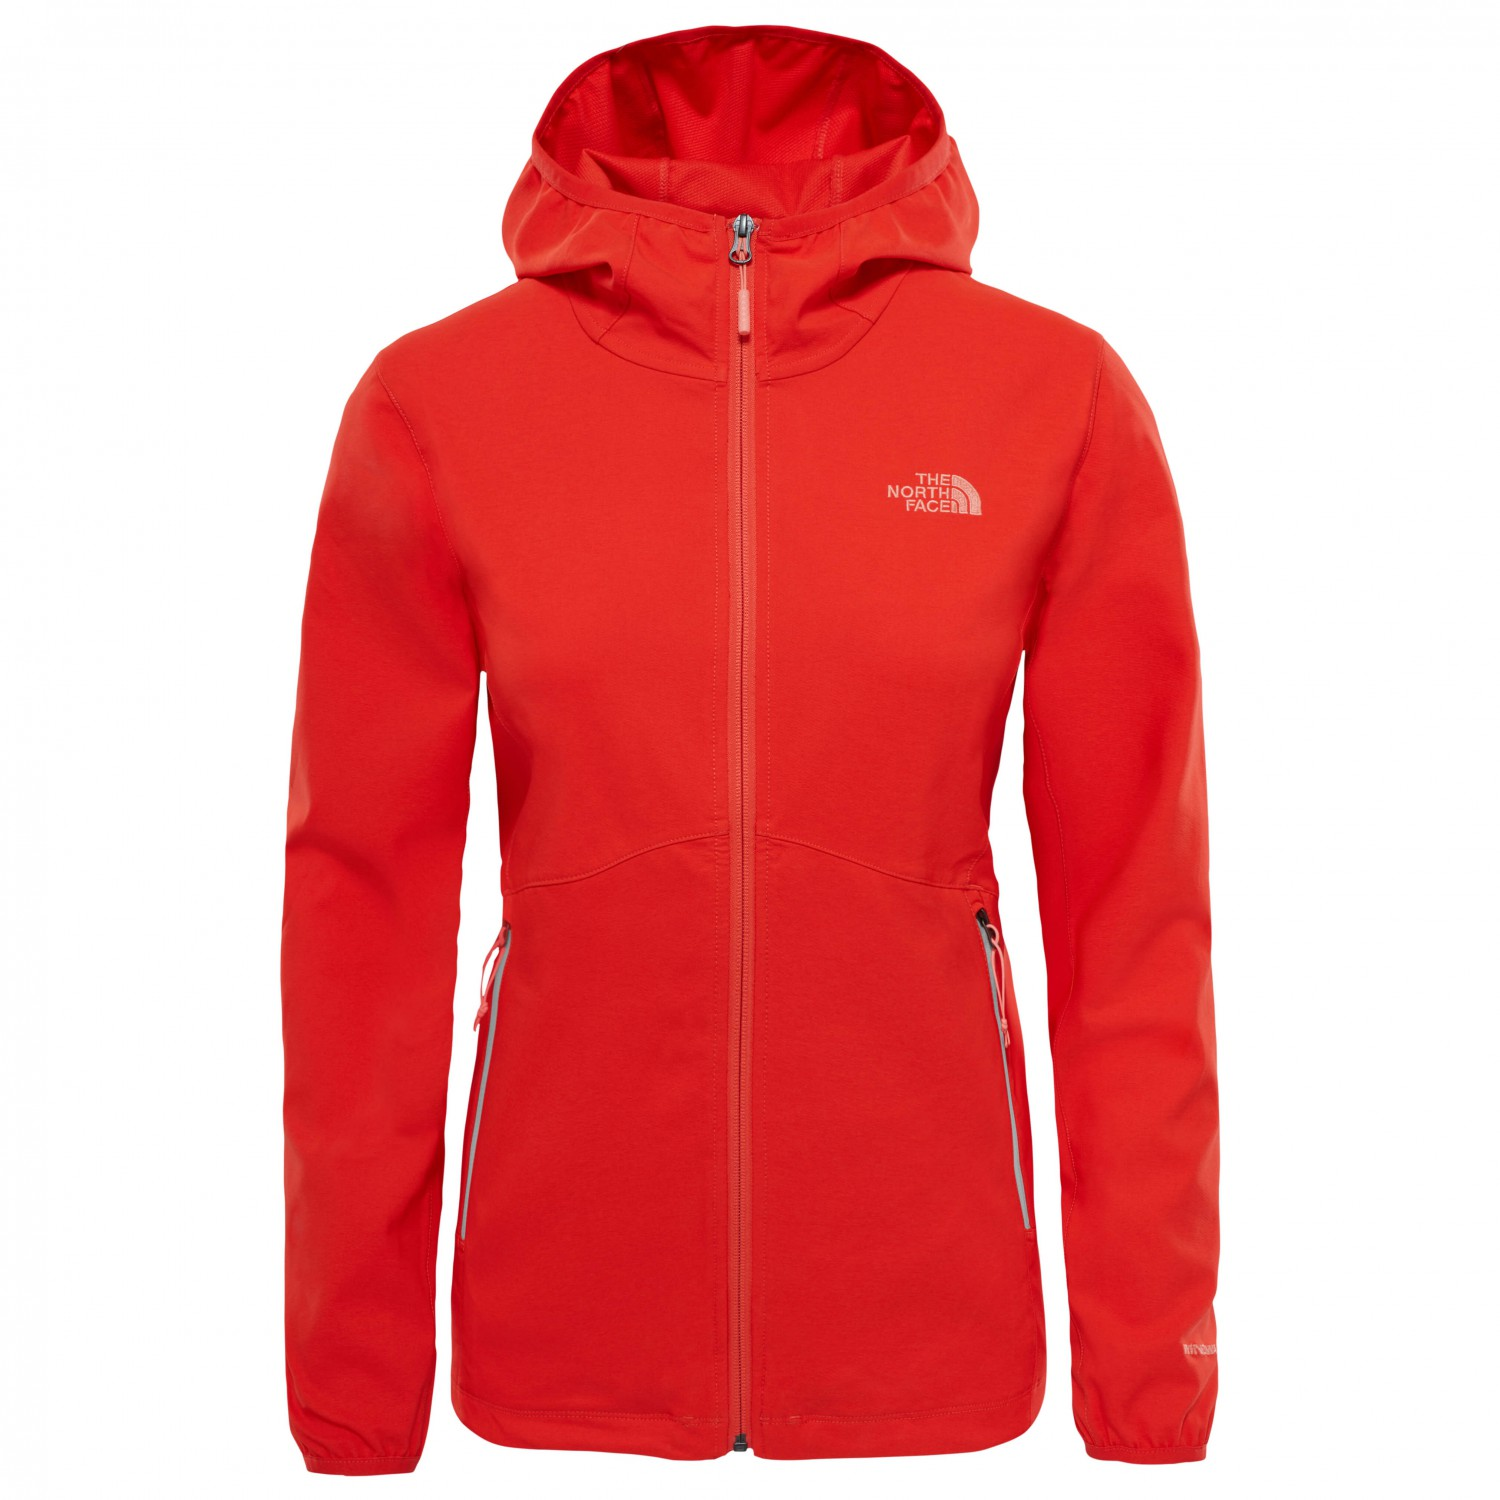 The North Face Nimble Hoodie Softshell Jacket Womens Buy Online